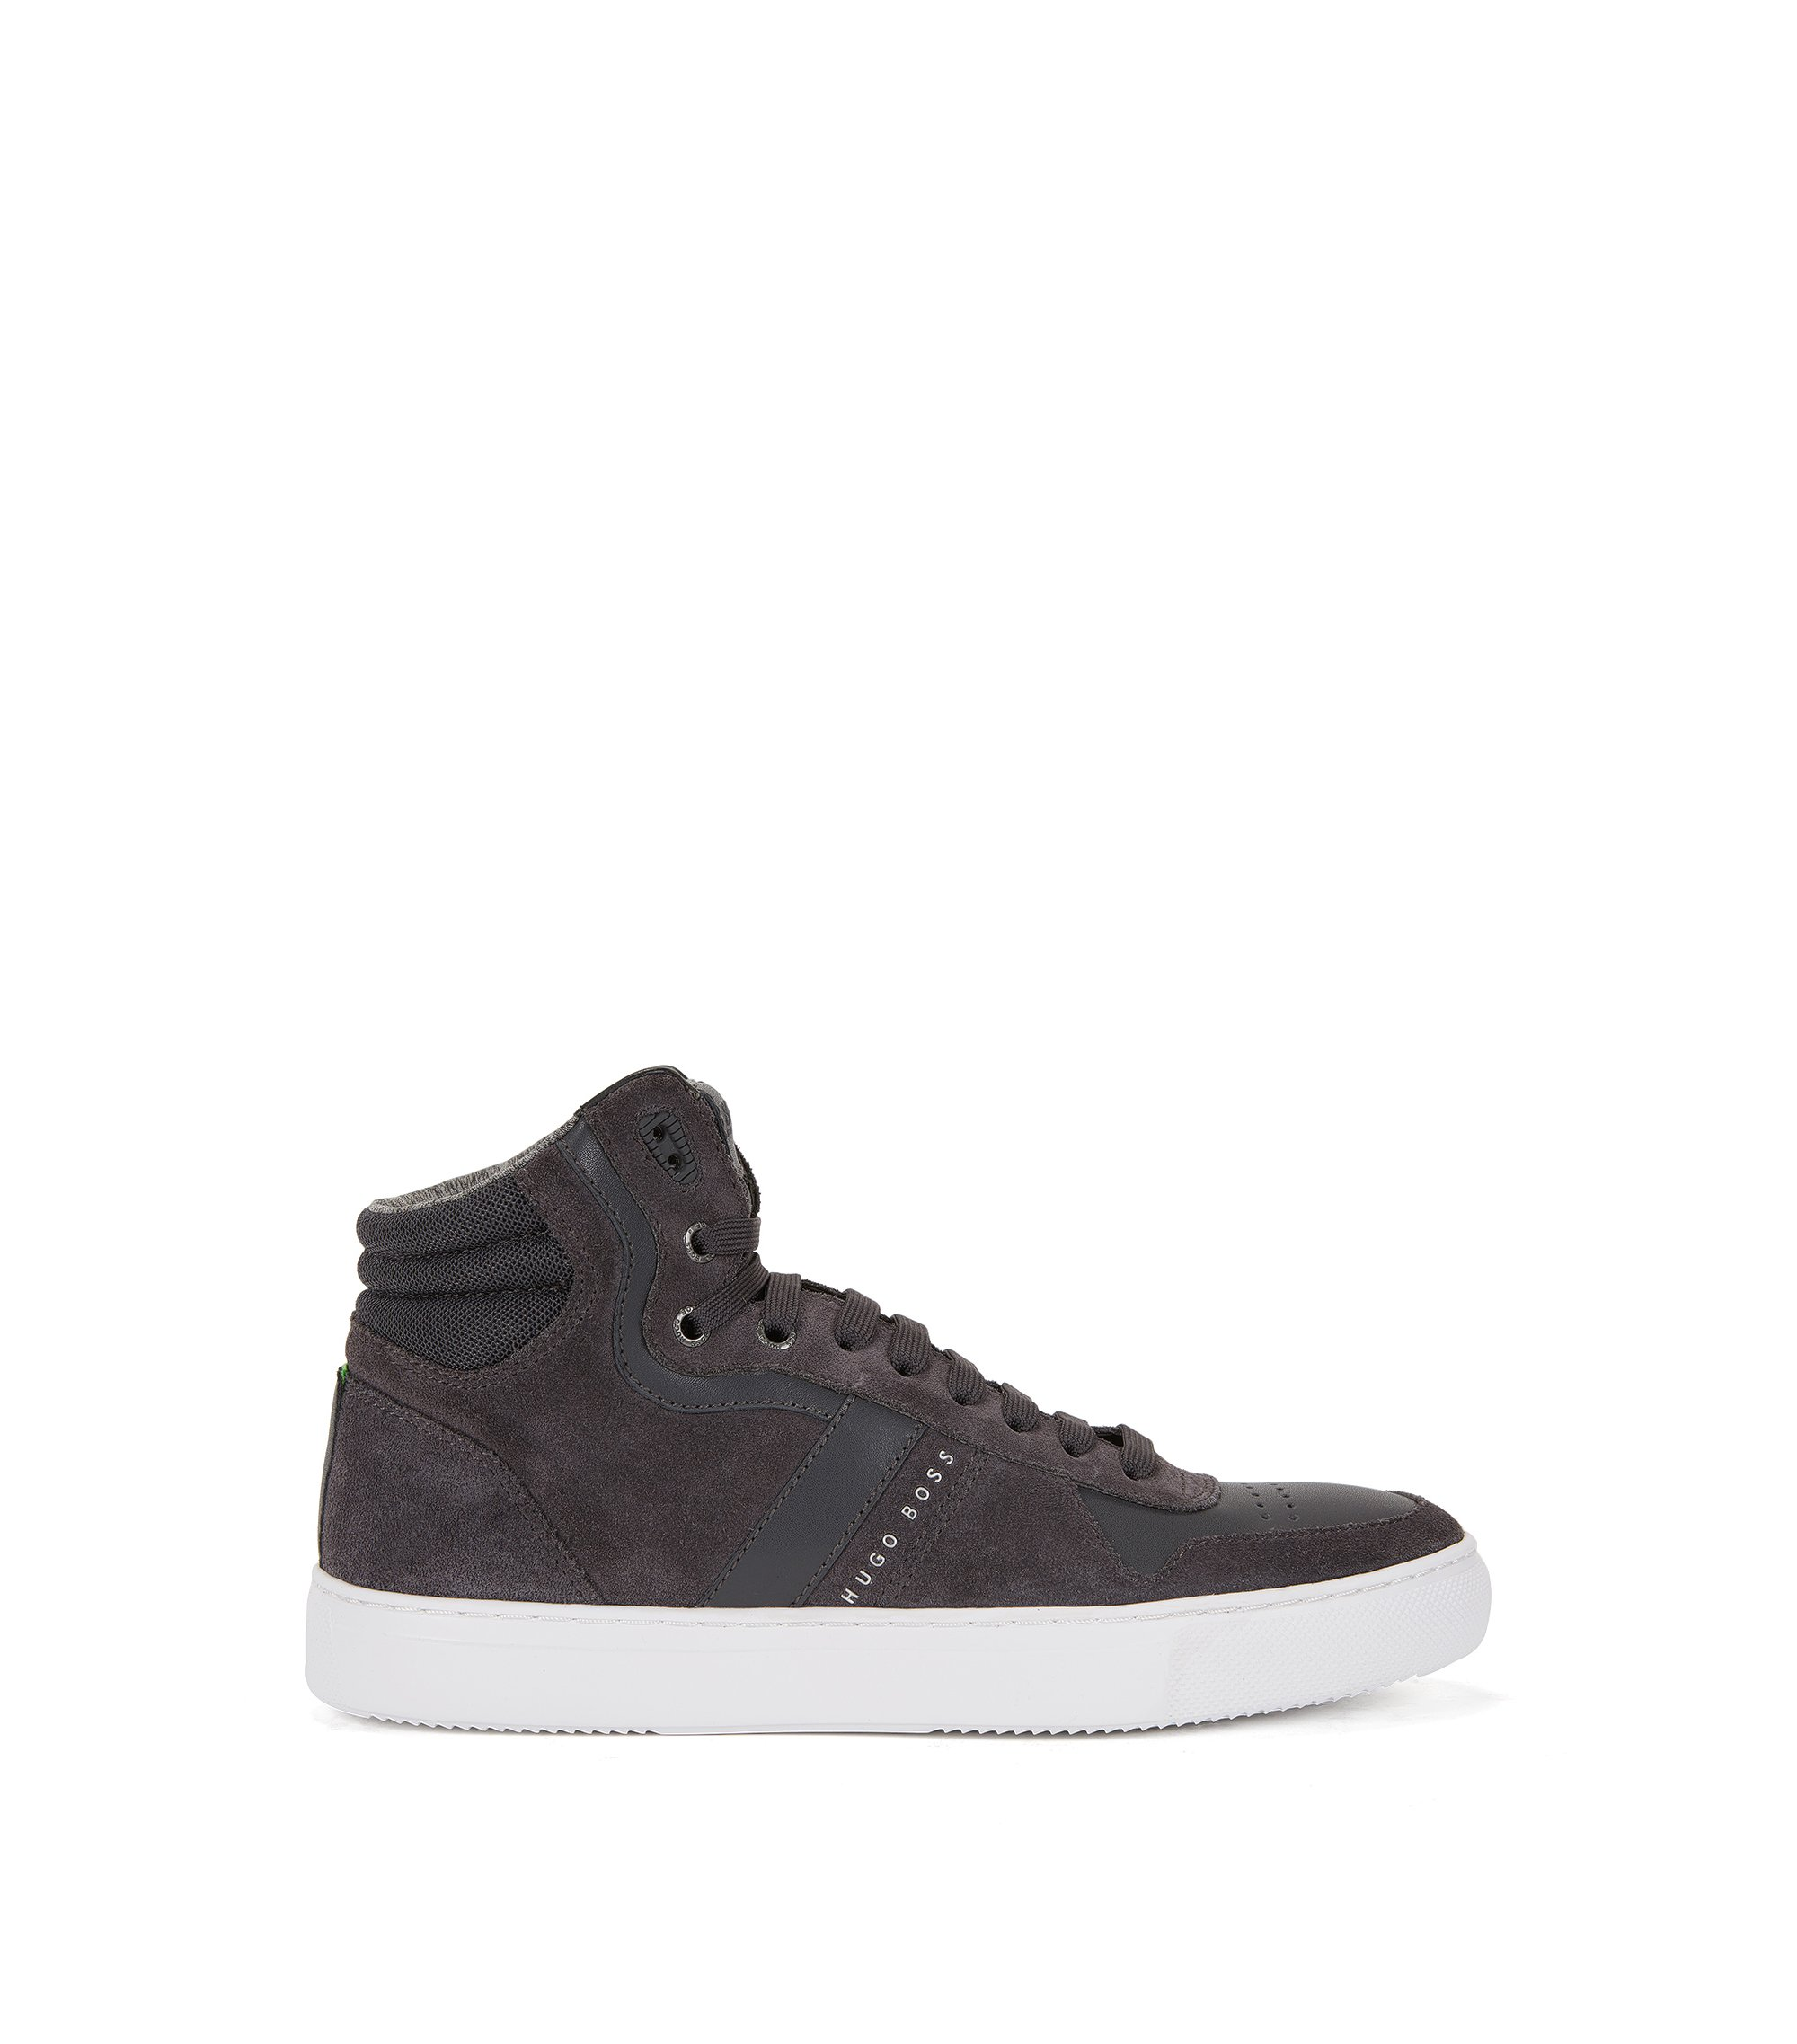 Leather & Suede High Top Sneaker | Enlight Hito Sdmx, Dark Grey